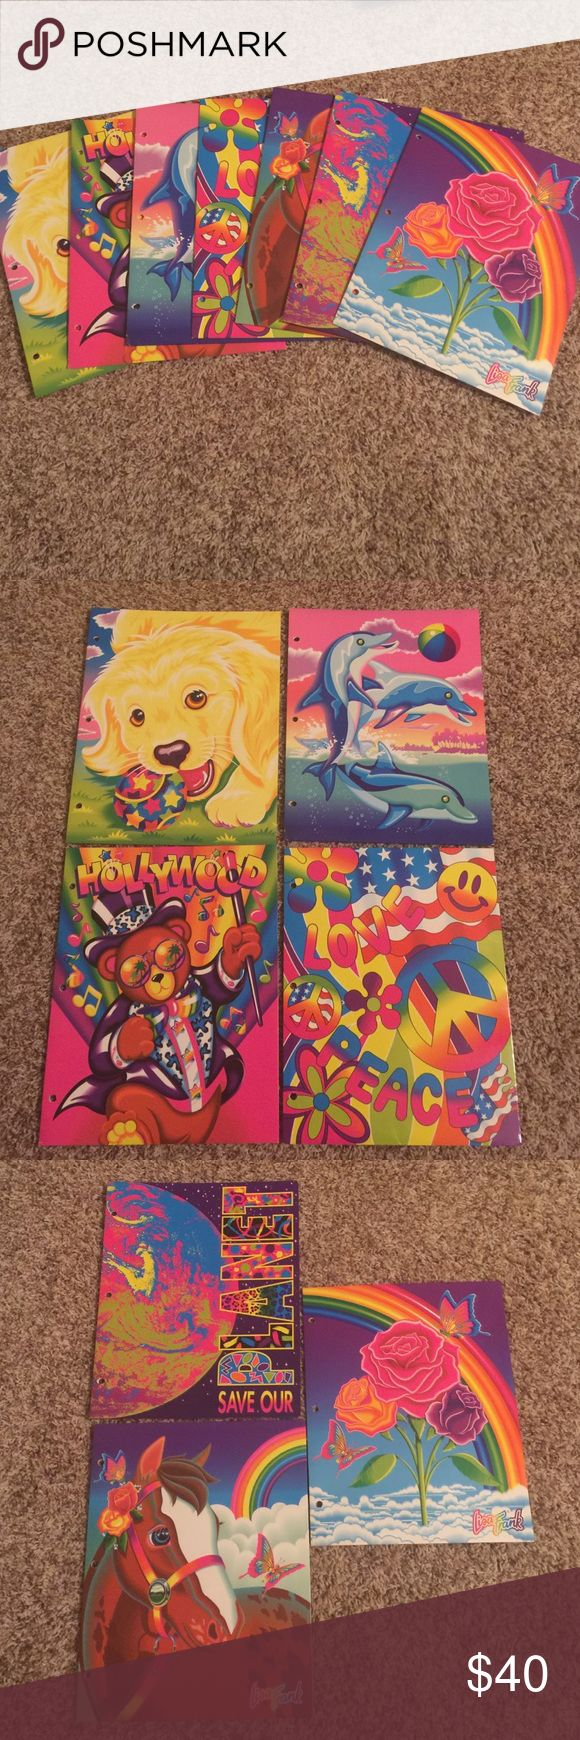 7 vintage Lisa Frank folders Seven total, gently or never used Lisa Frank folders. All in good shape. Minimal or no stress signs on binder holes. None are written in. Minimal to no creasing on folders. 9 out of 10 on condition. All 90's Lisa Frank. You get all 7 for one price. No price talk in comments. No holds or trades. Bundling is fun & I have more Lisa frank items listed/to be listed soon. lisa frank Accessories